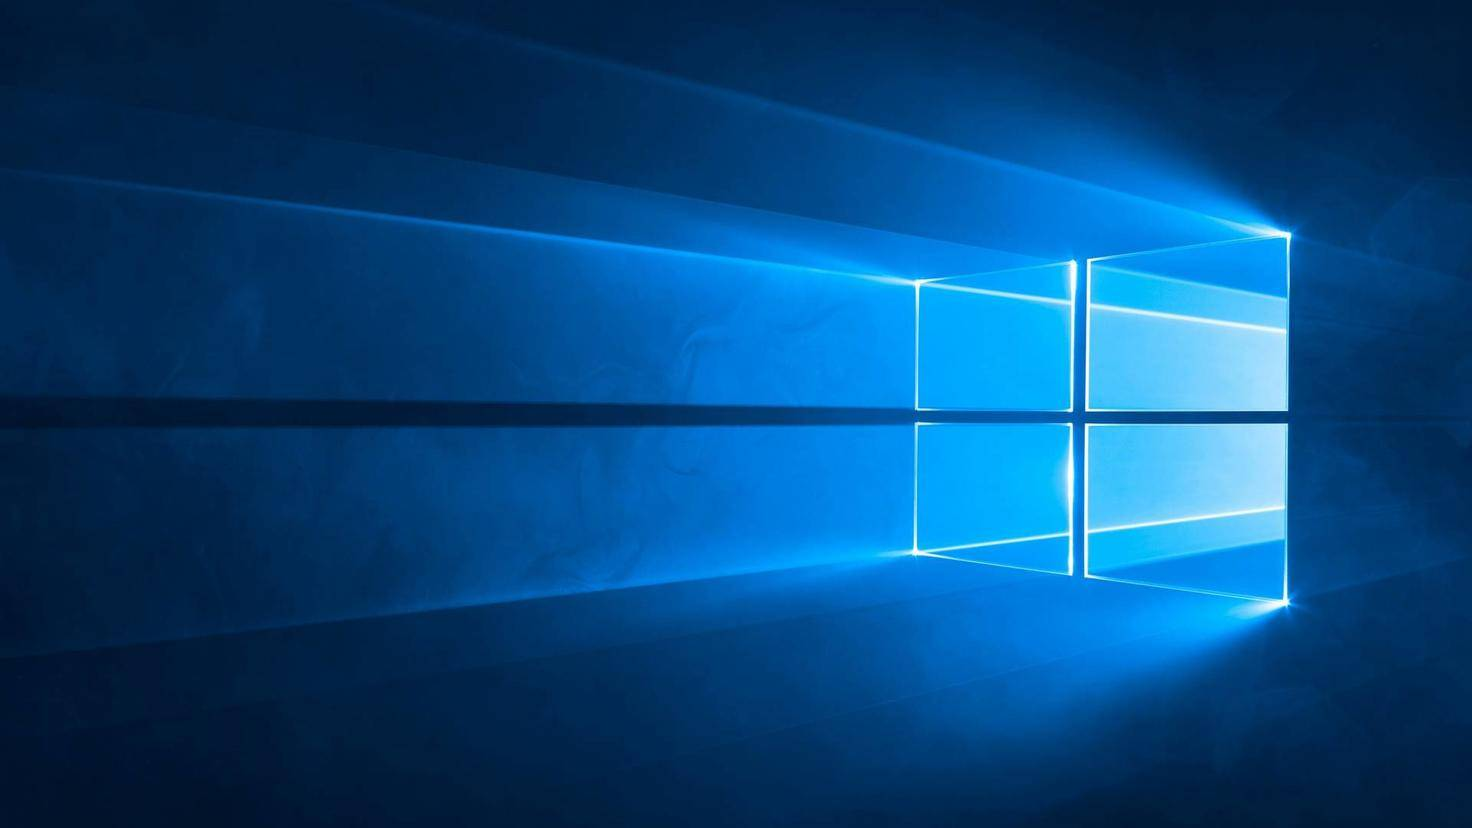 Windows-10-Wallpaper-Desktop